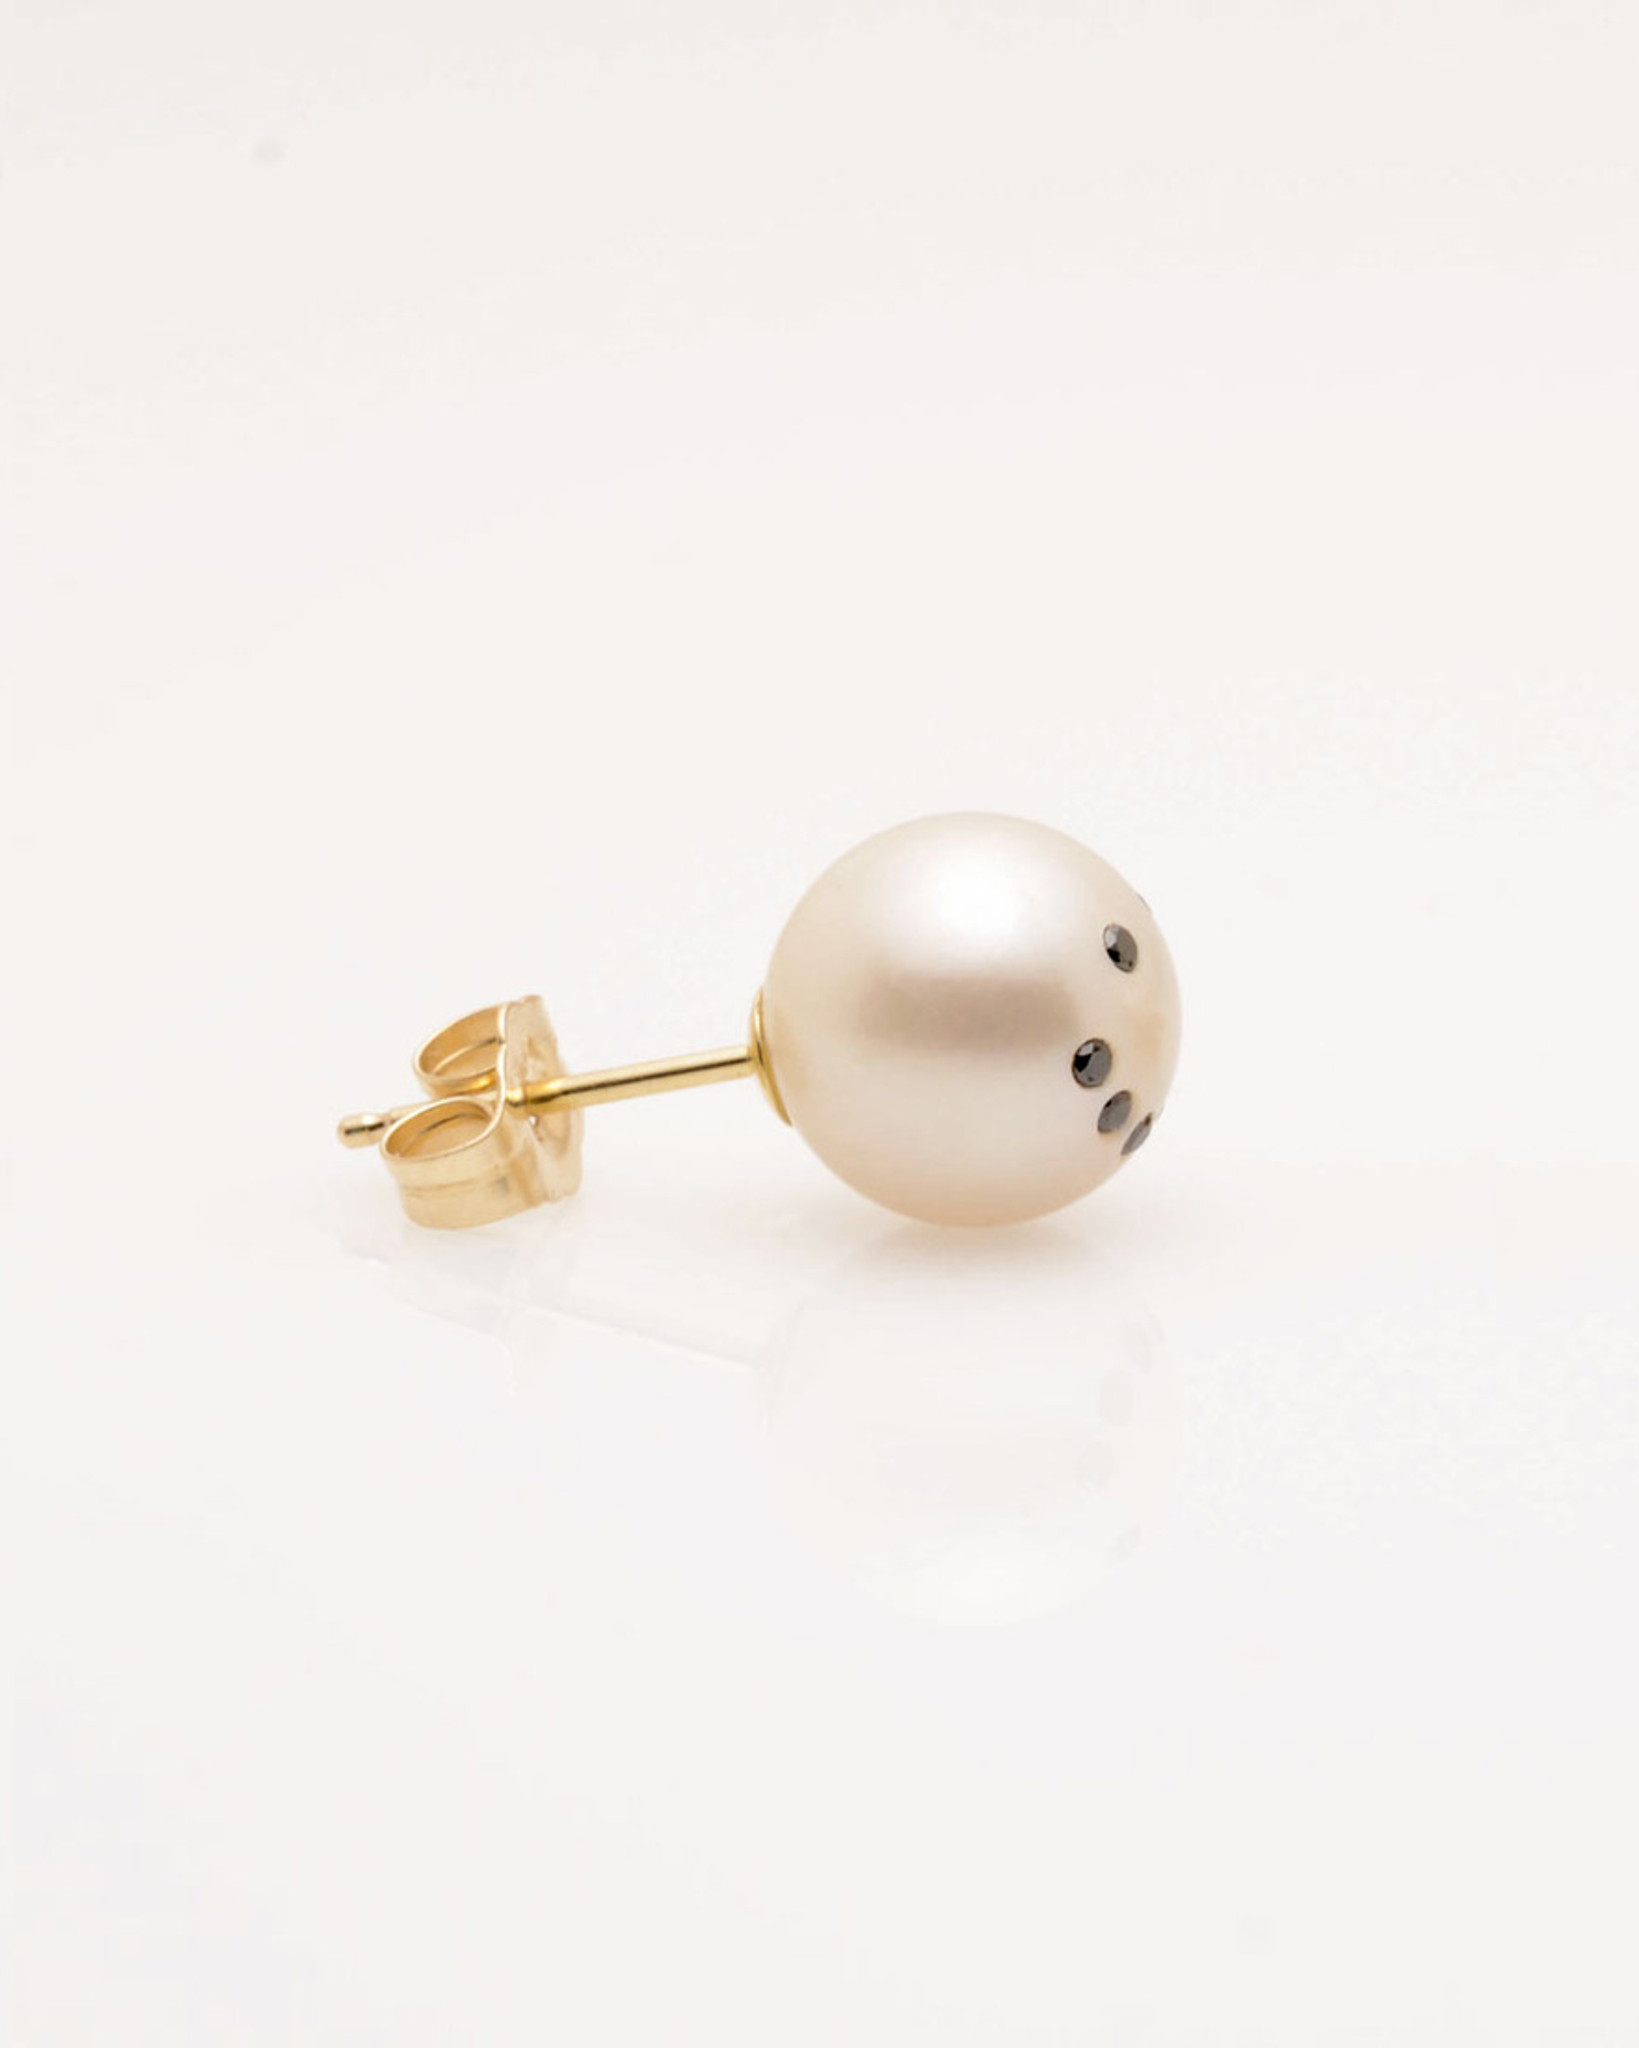 for real pearl earrings designs phab main at articles single multiple styles detailmain women life and